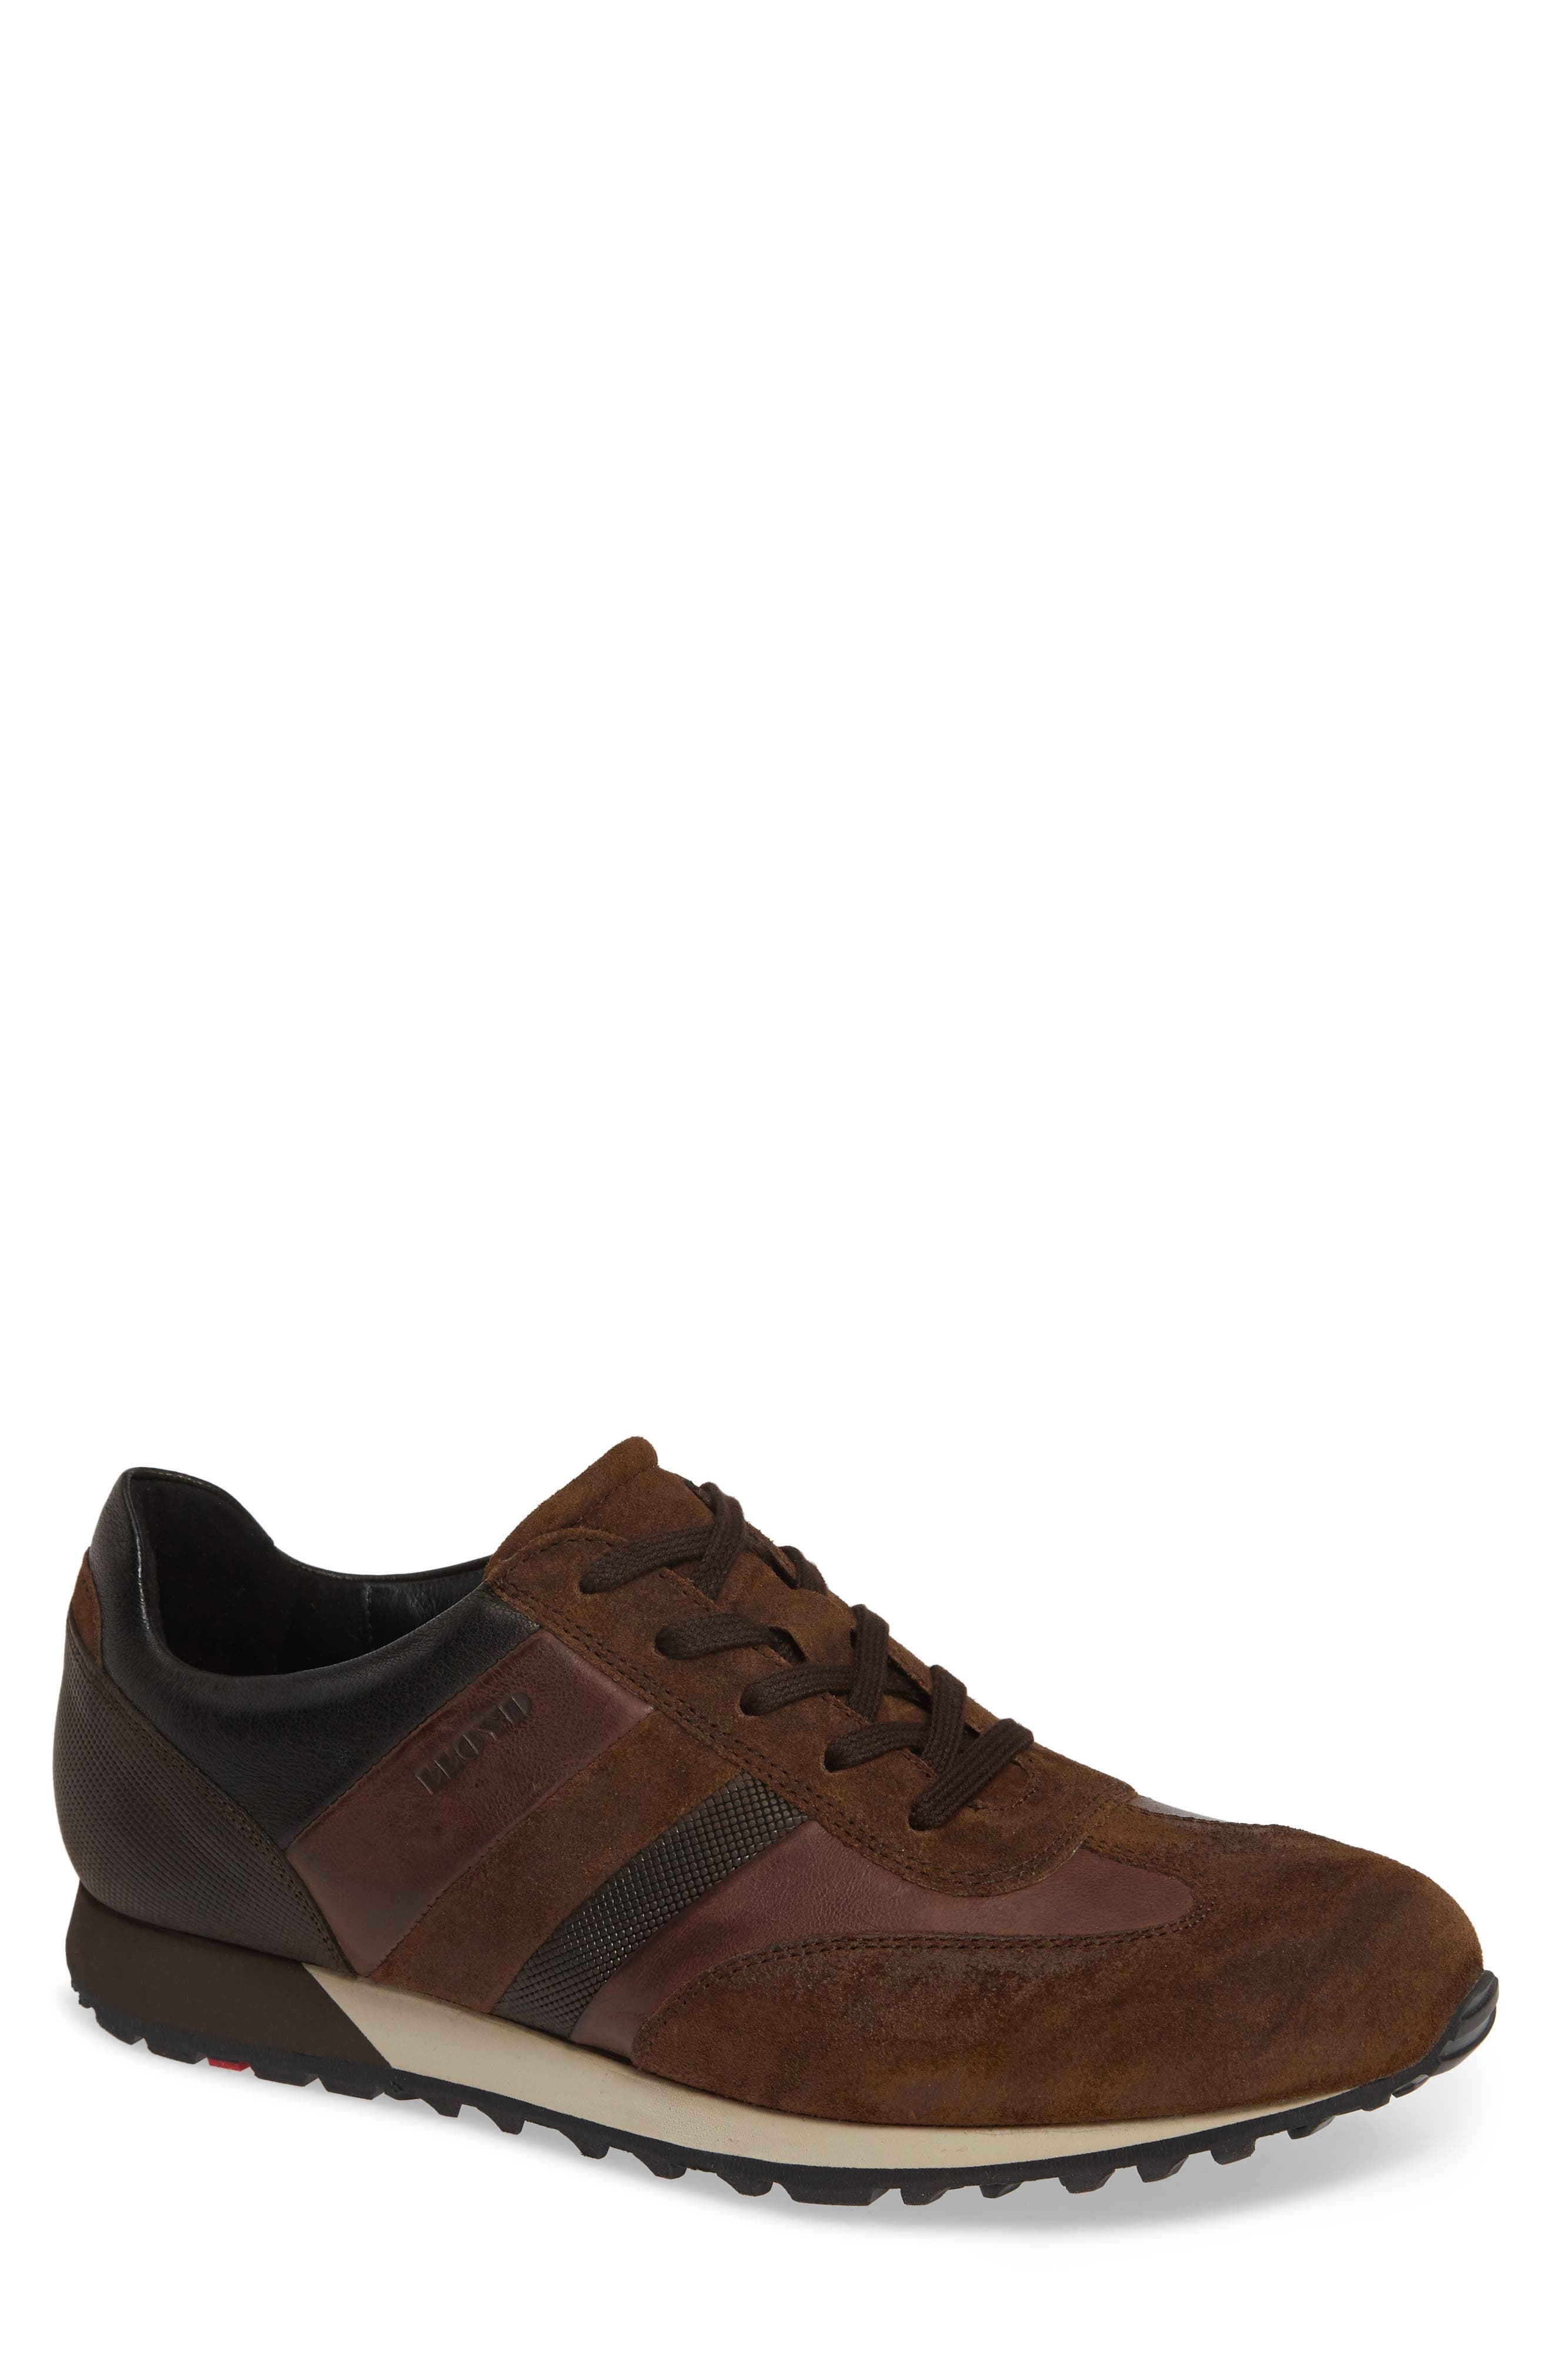 Agon Sneaker,                             Main thumbnail 1, color,                             CHOCOLATE SUEDE